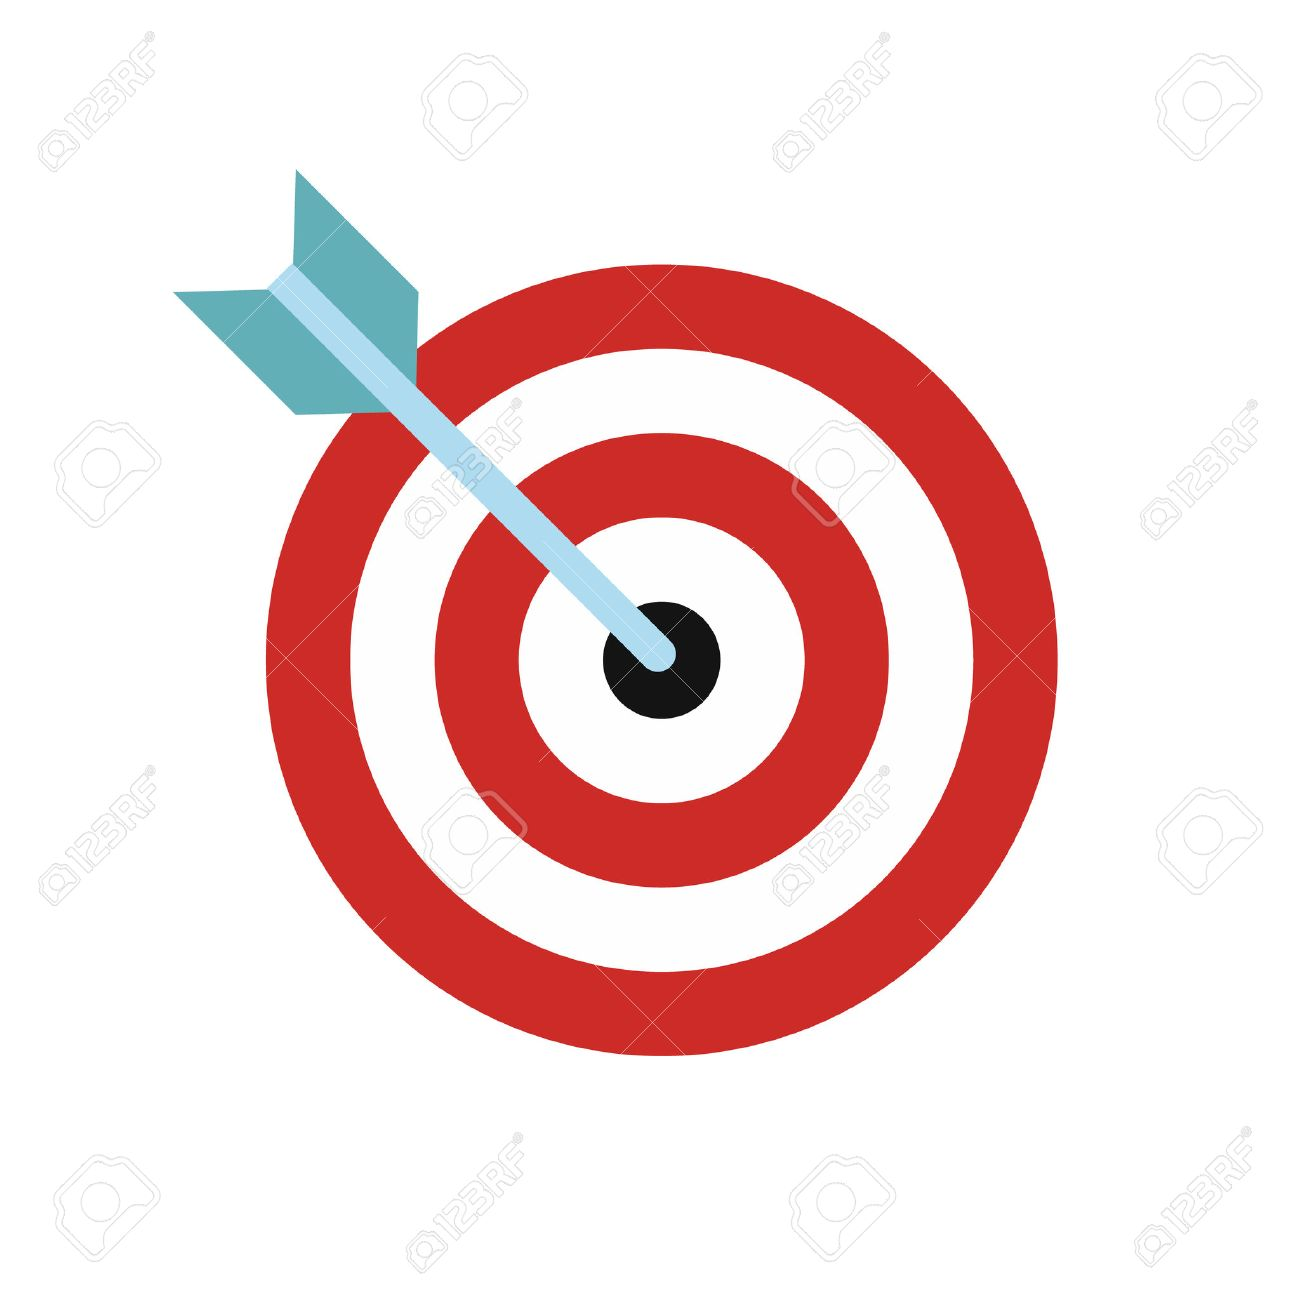 Target with dart flat icon isolated on white background - 51977844